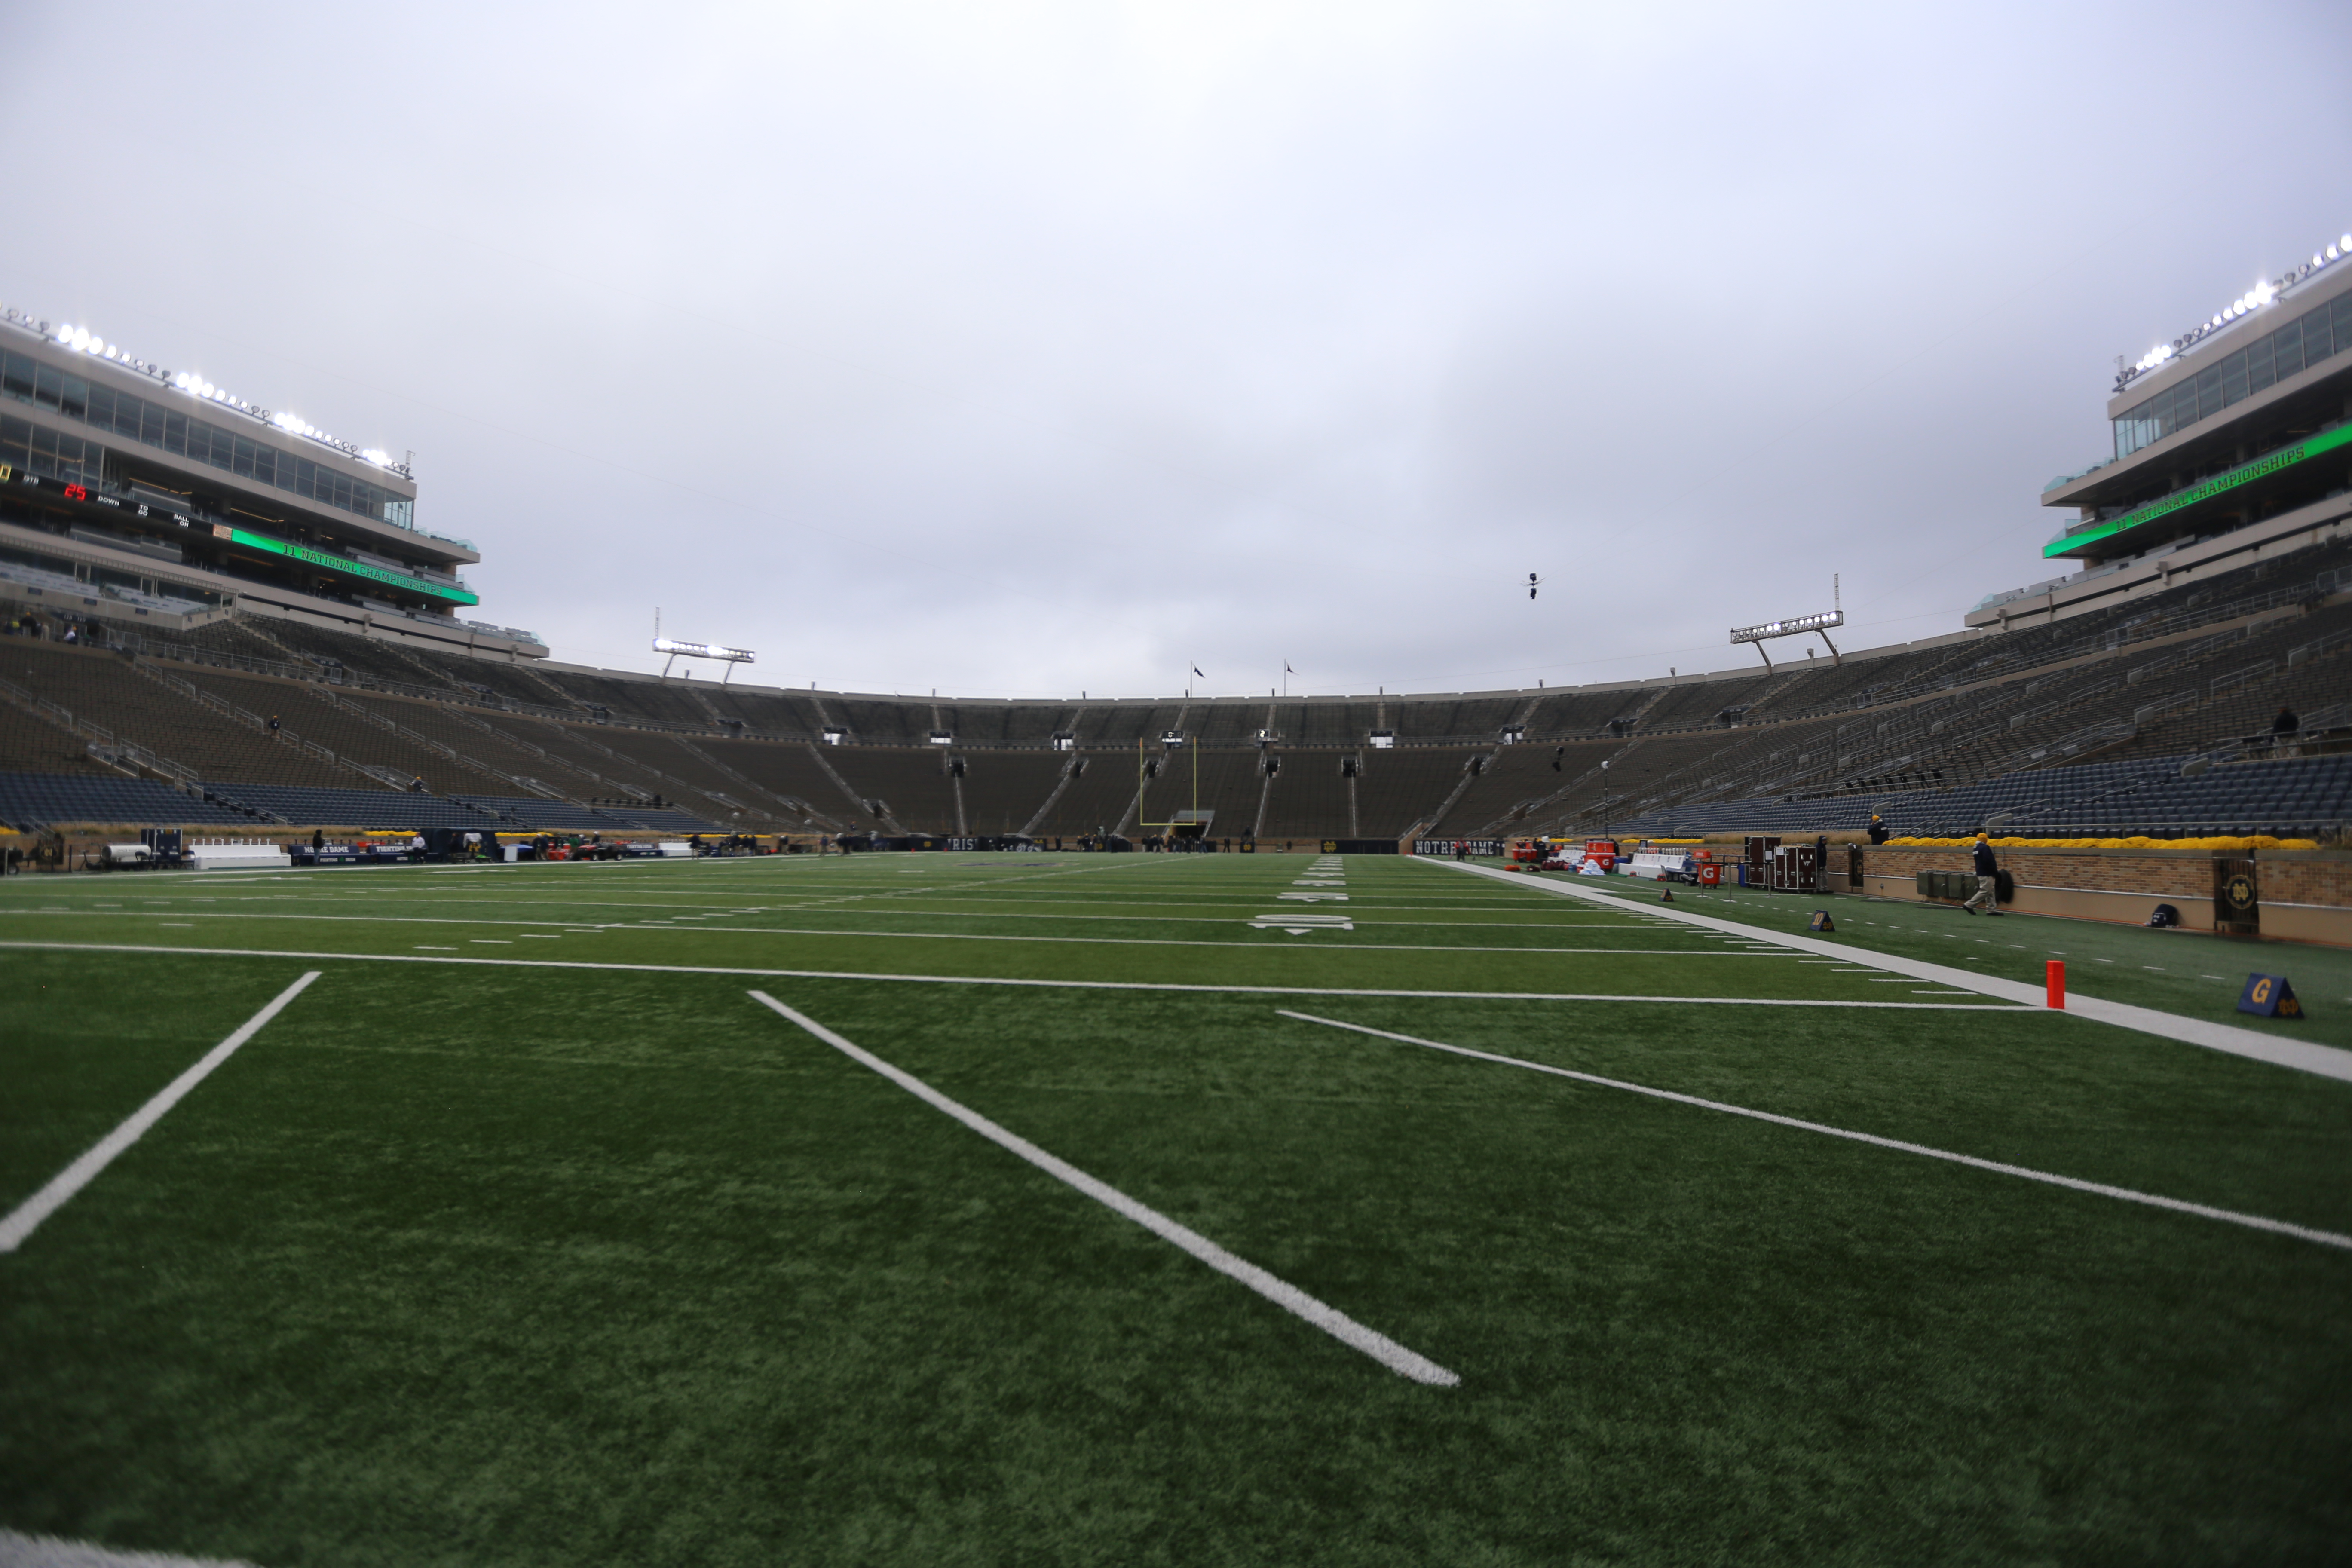 ND Football: Welcome To NFL Pro Days At Notre Dame